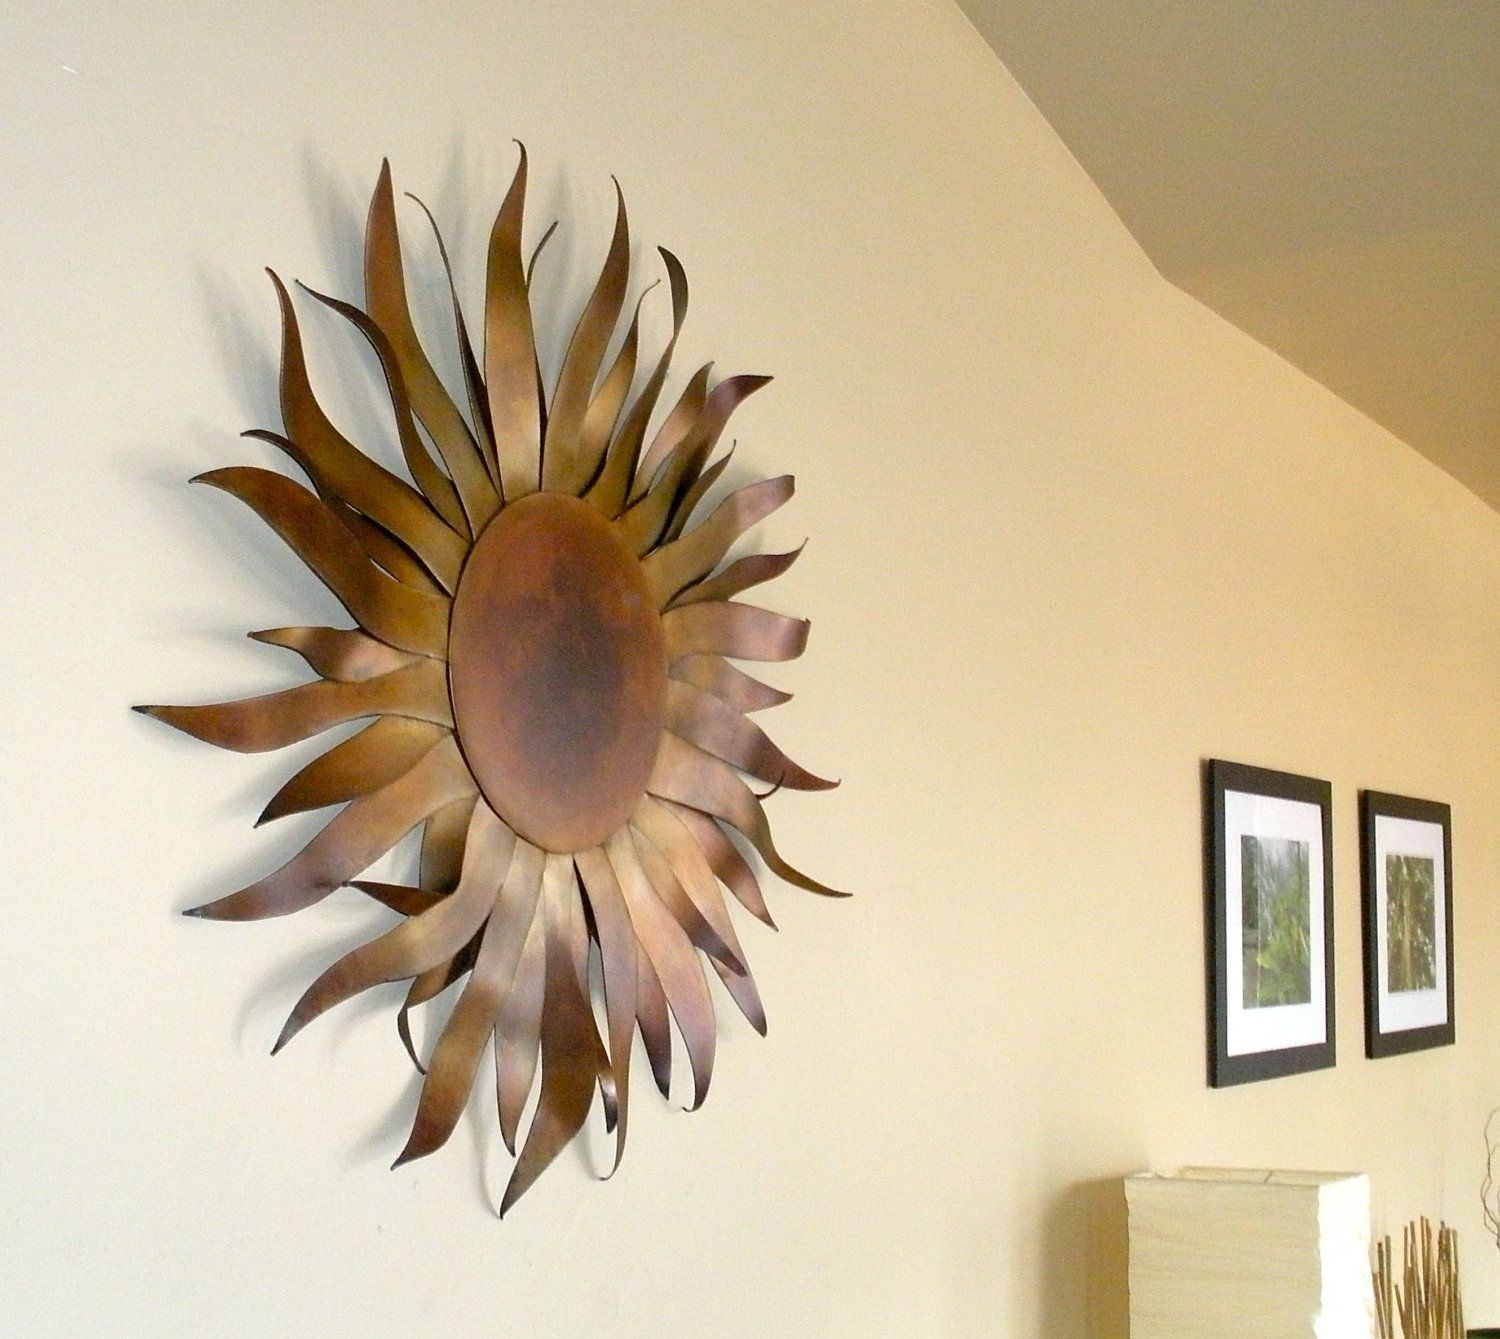 Metal Wall Art - Garden & Home Sculpture With Copper Patina. $350.00 ...